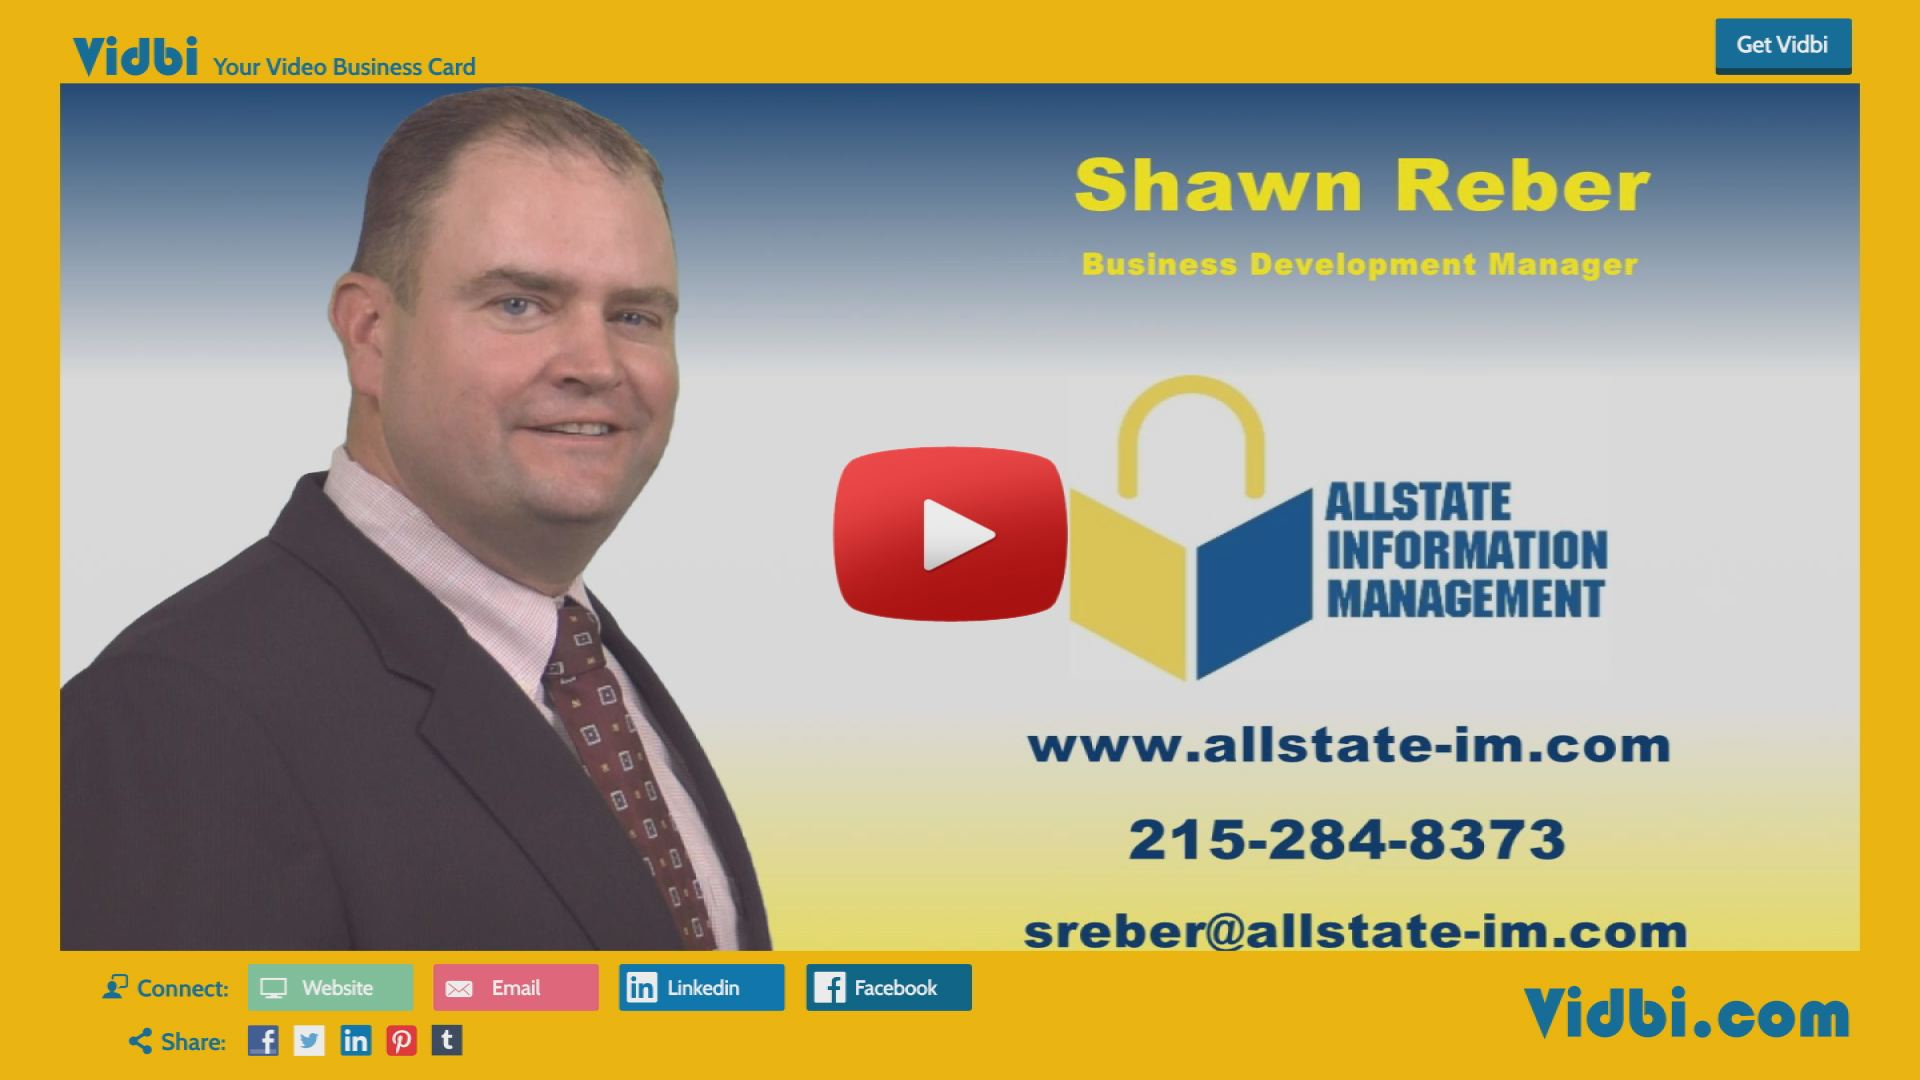 Shawn Reber - Allstate Information Management Vidbi